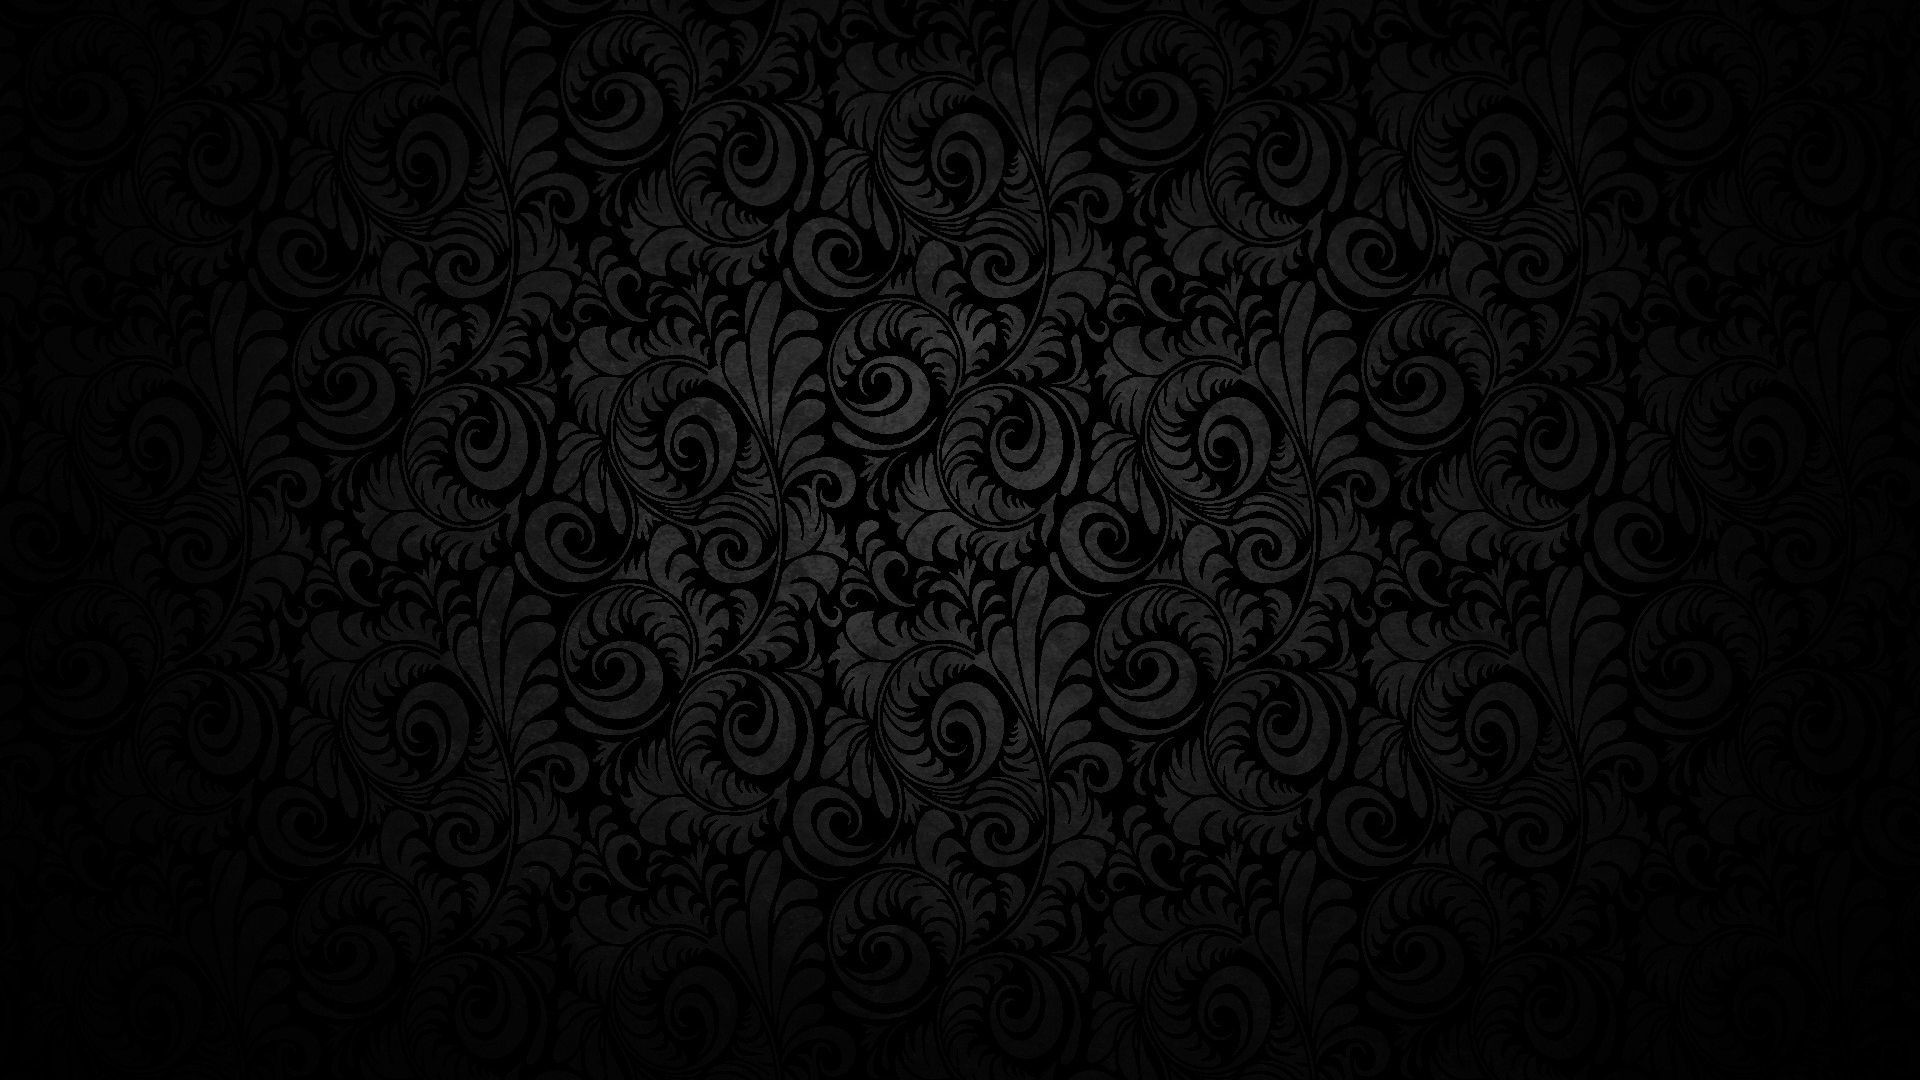 Dark Hd Wallpapers 1080p 68 Images